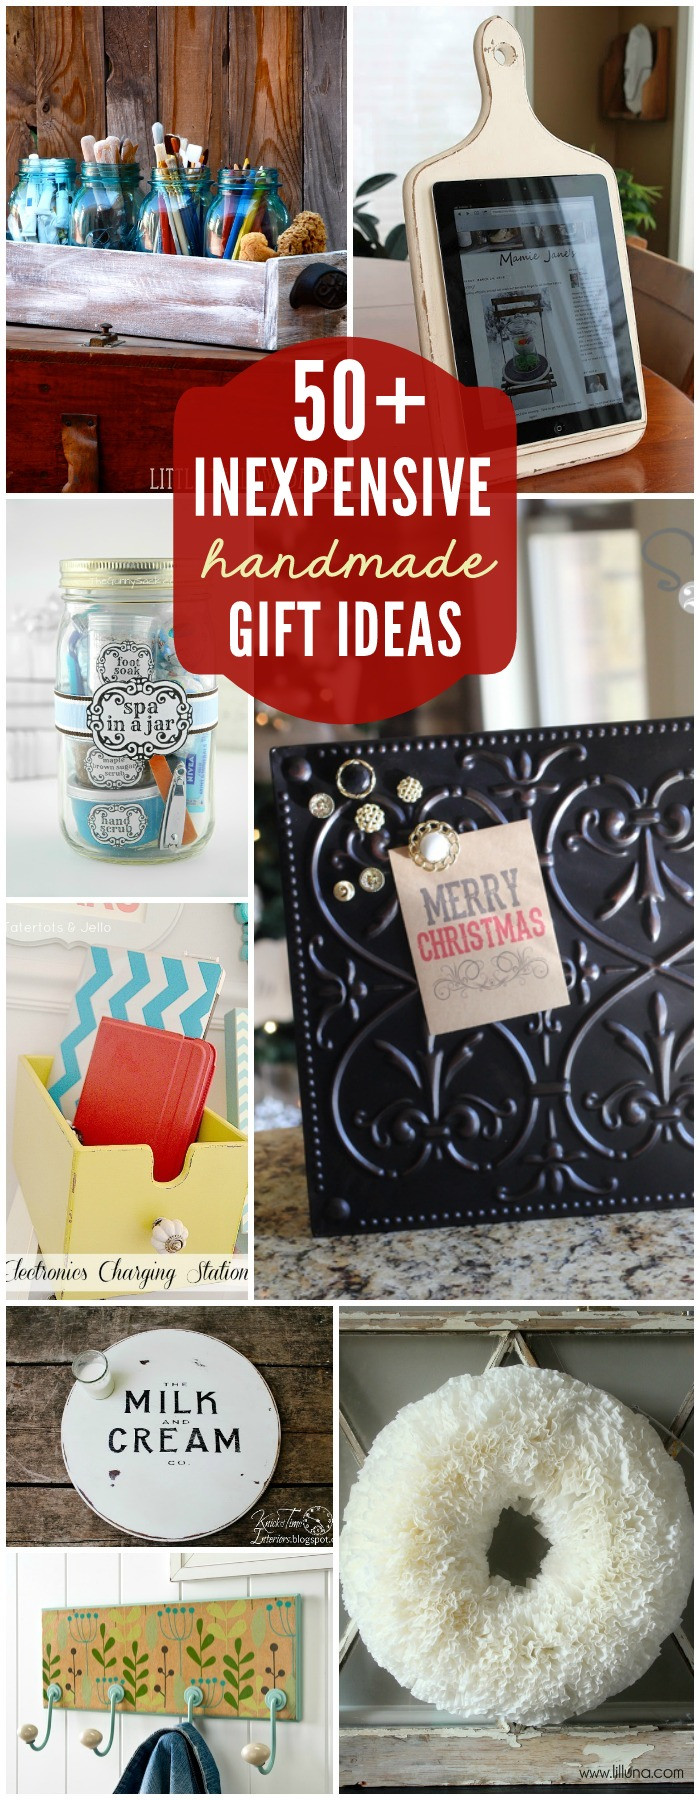 Best ideas about Inexpensive Gift Baskets Ideas . Save or Pin Inexpensive Birthday Gift Ideas Now.